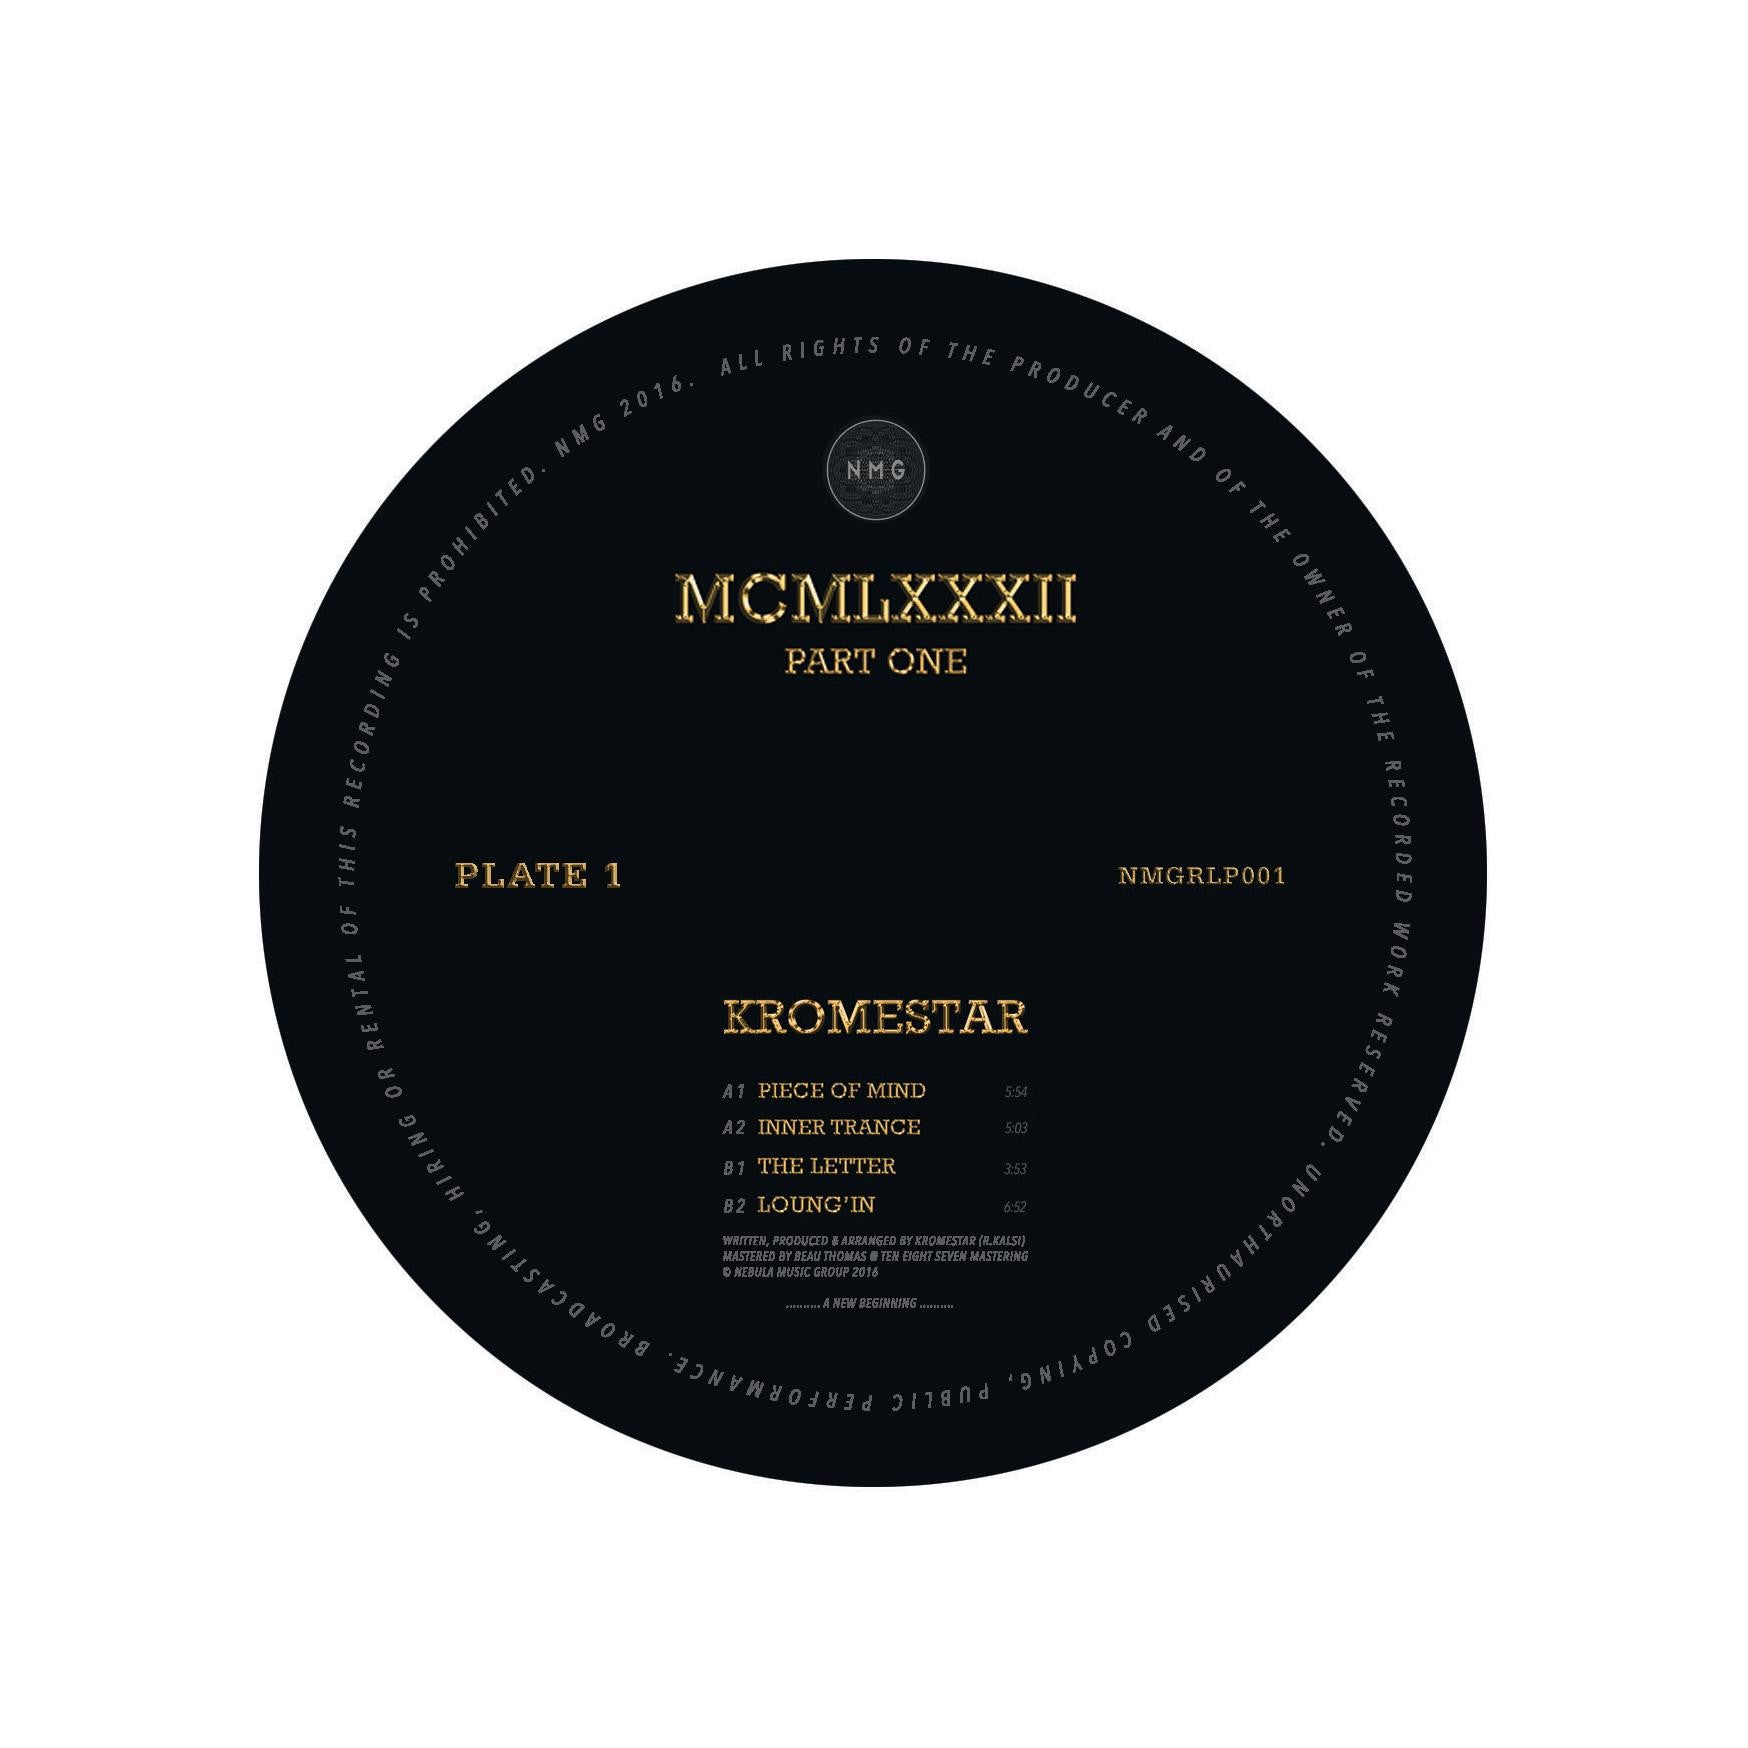 Kromestar - MCMLXXXII Part One , Vinyl - Nebula Music Group, Unearthed Sounds - 1